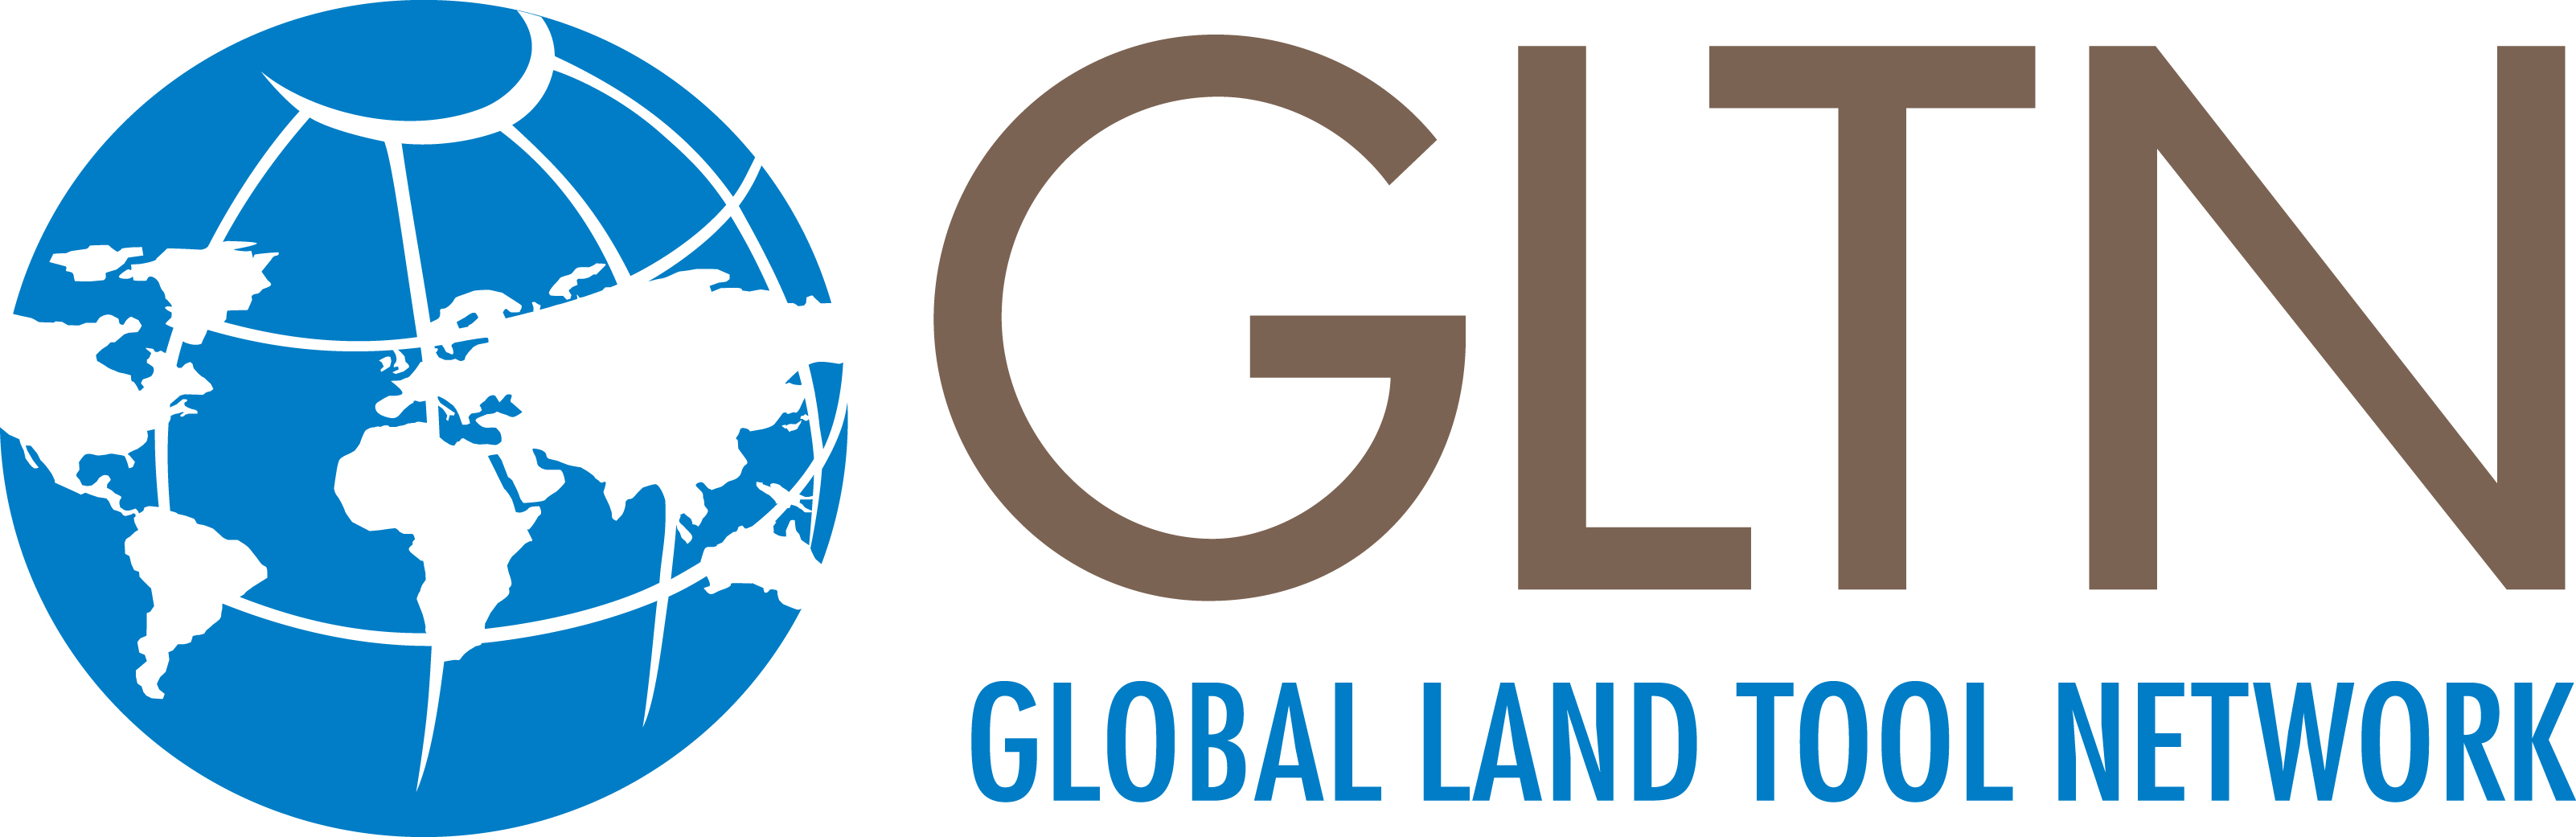 Global Land Tool Network